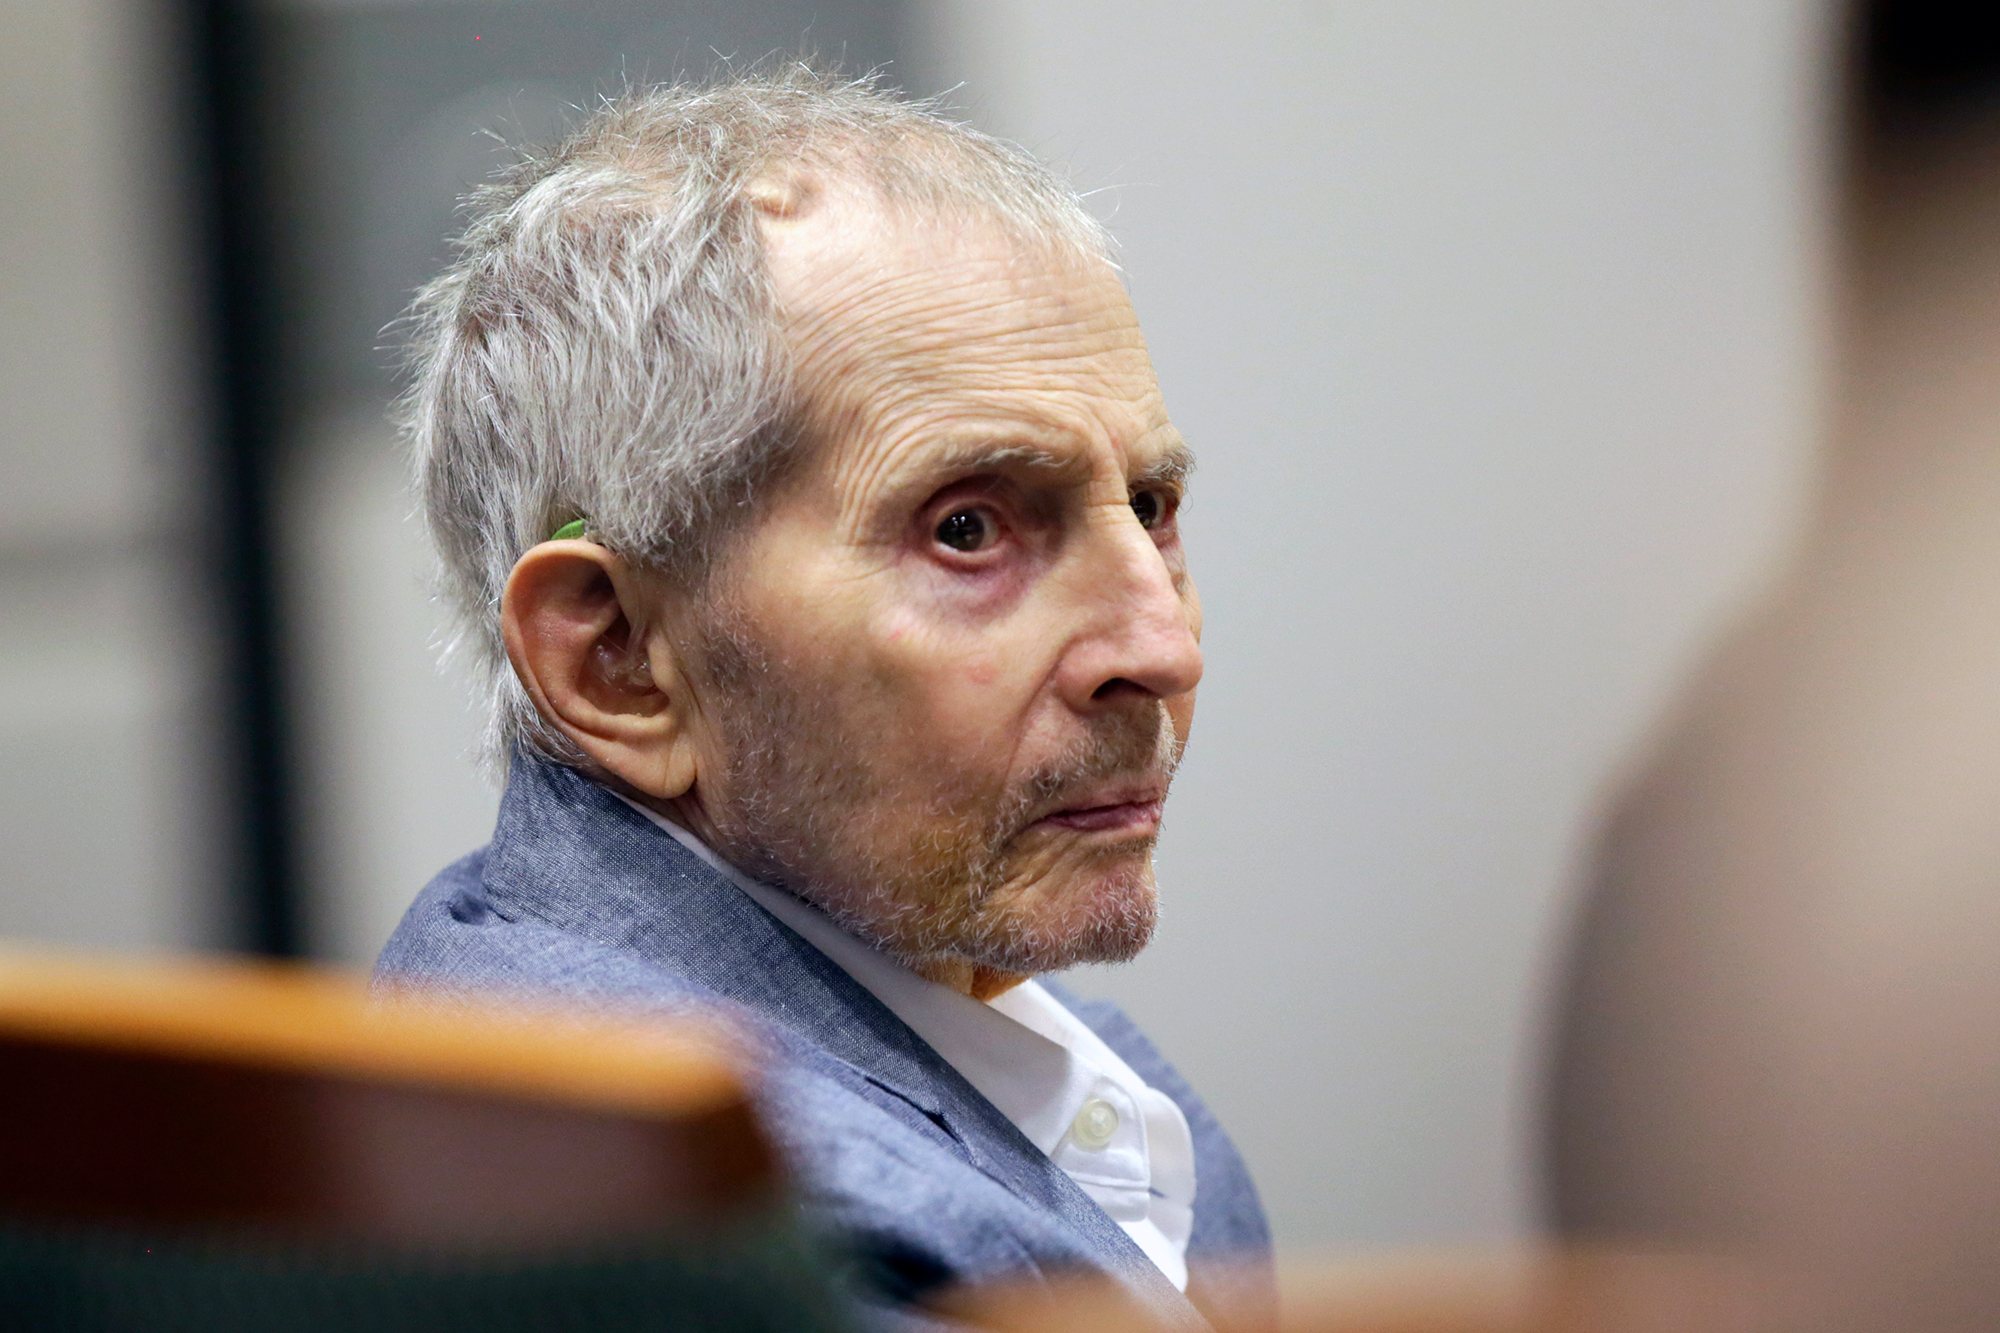 Real estate heir Robert Durst looks over during his murder trial on March 10, 2020 in Los Angeles, California.